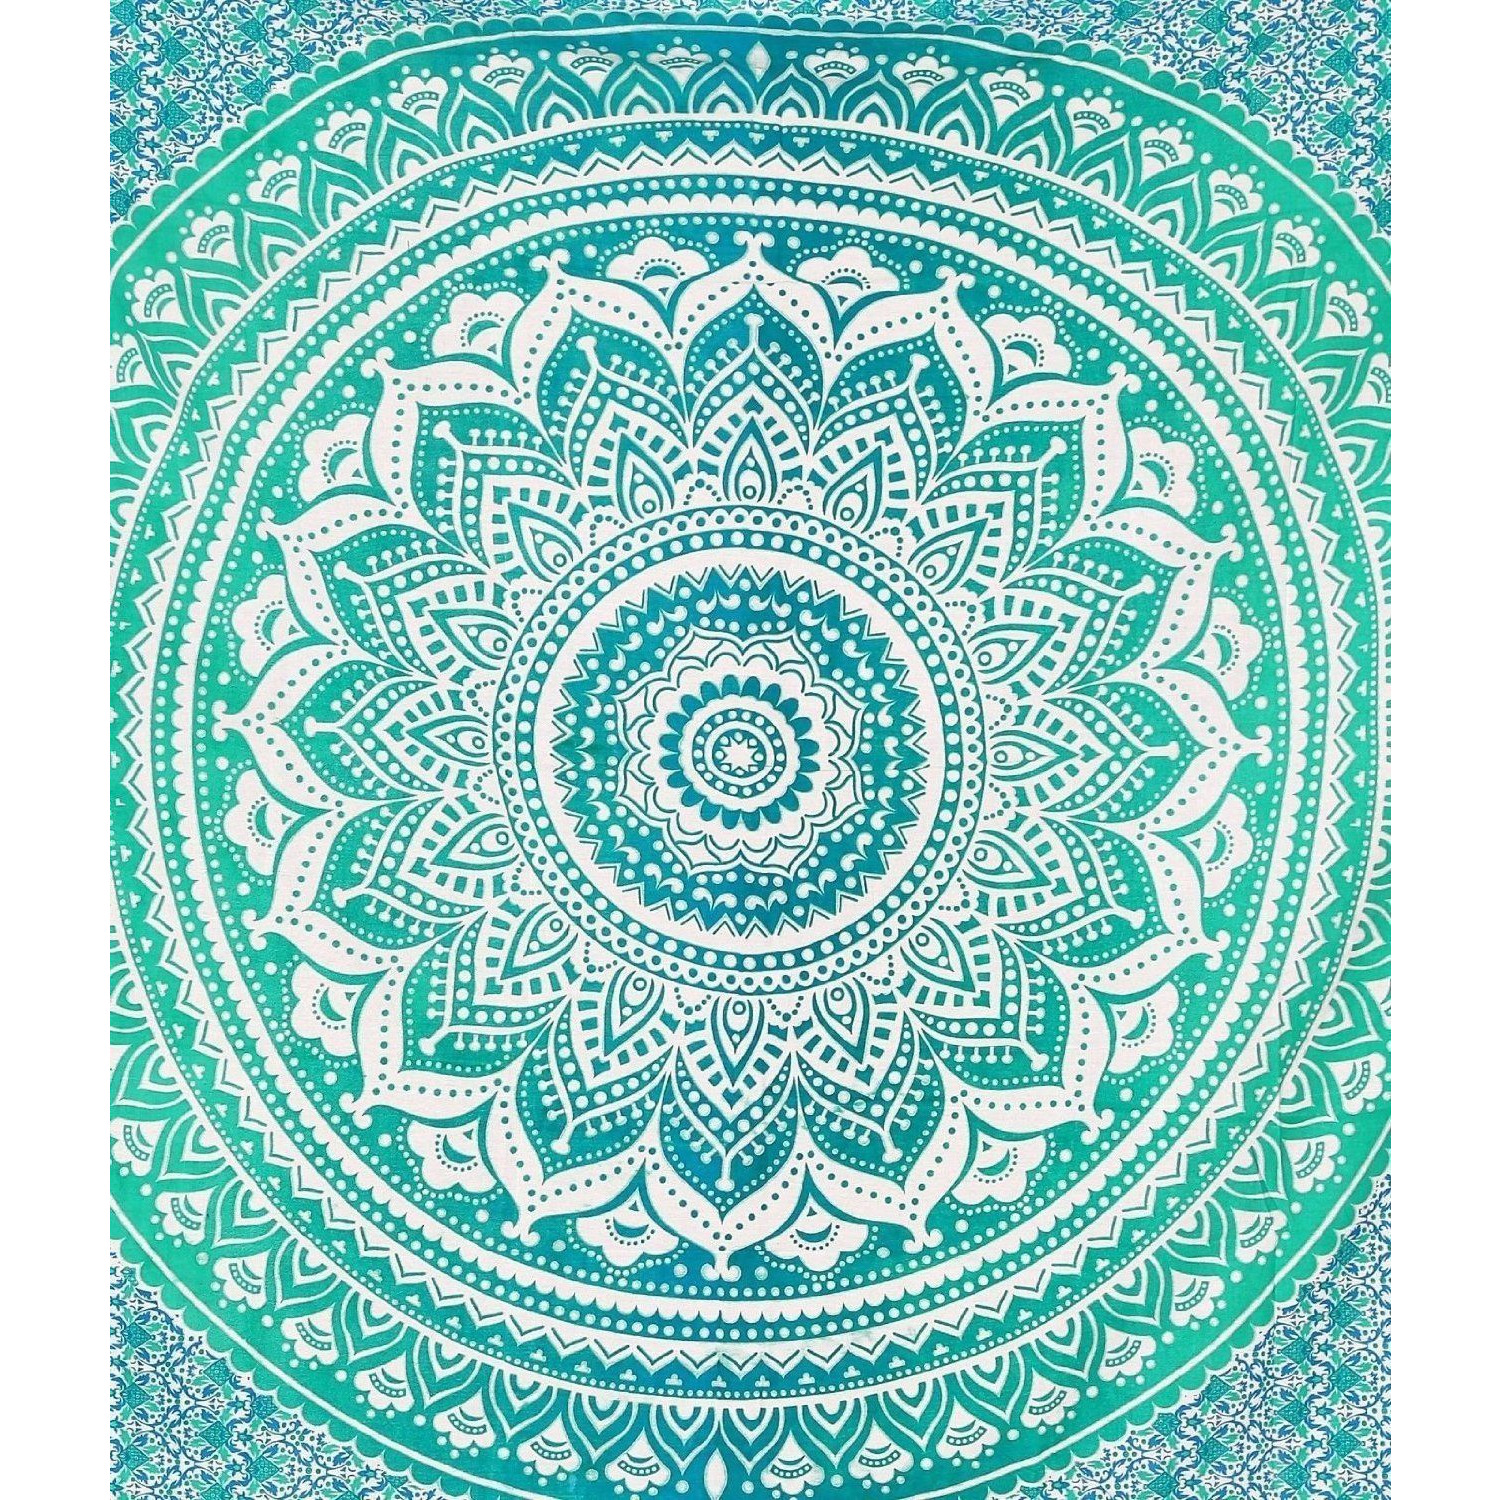 Queen Ombre Mandala Tapestry Hippie Wall Hanging Throw Indian Bohemian Bedspread